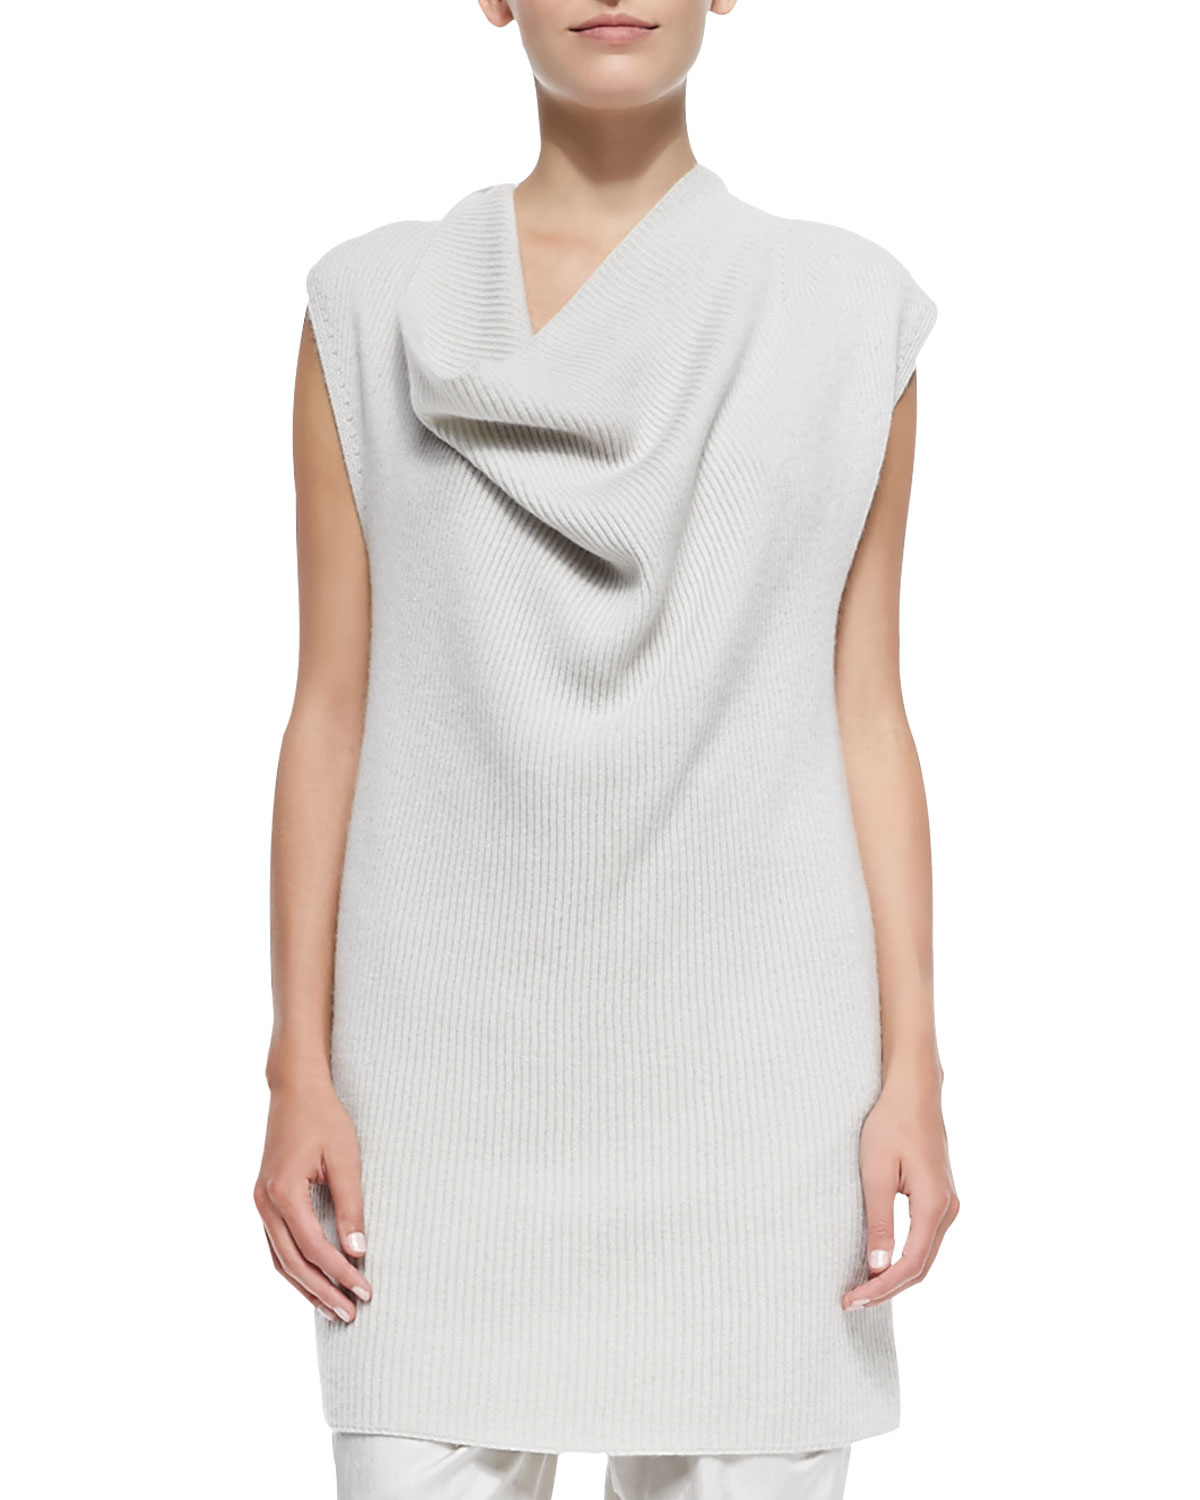 Donna karan Ribbed Cashmere Draped-neck Tunic Sweater in White | Lyst